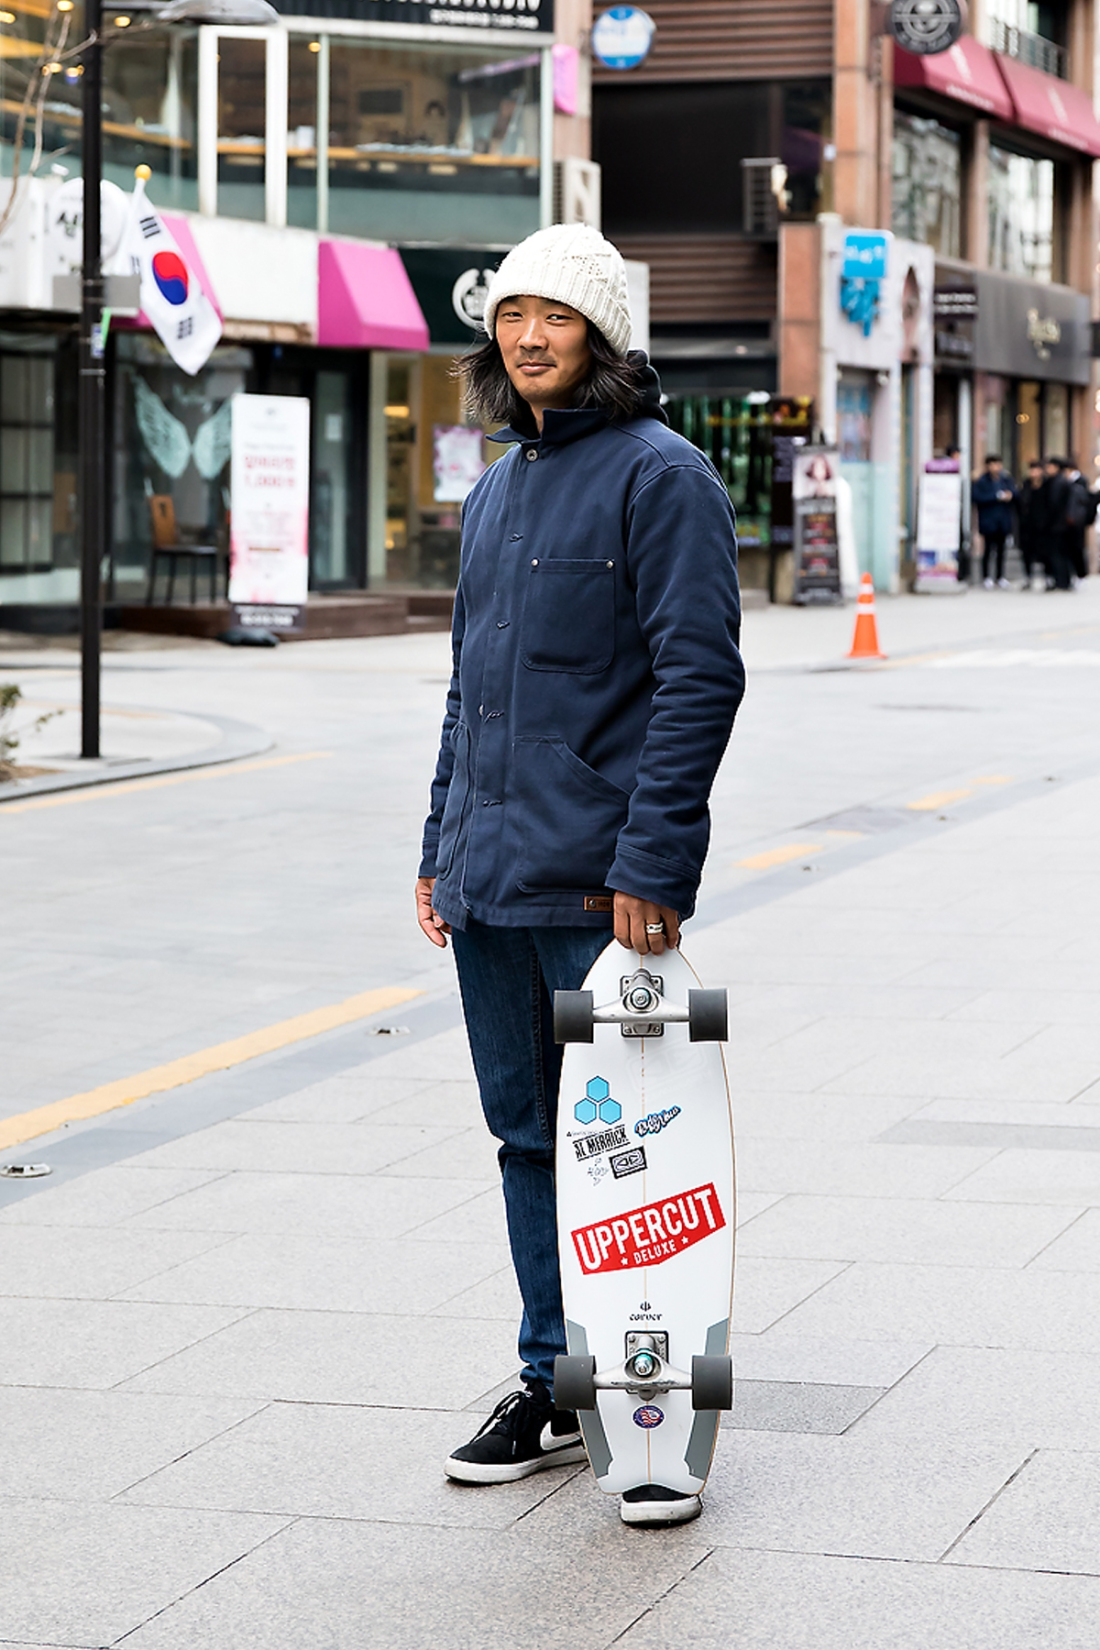 Kim Byungsung, Street Fashion 2017 in SEOUL.jpg